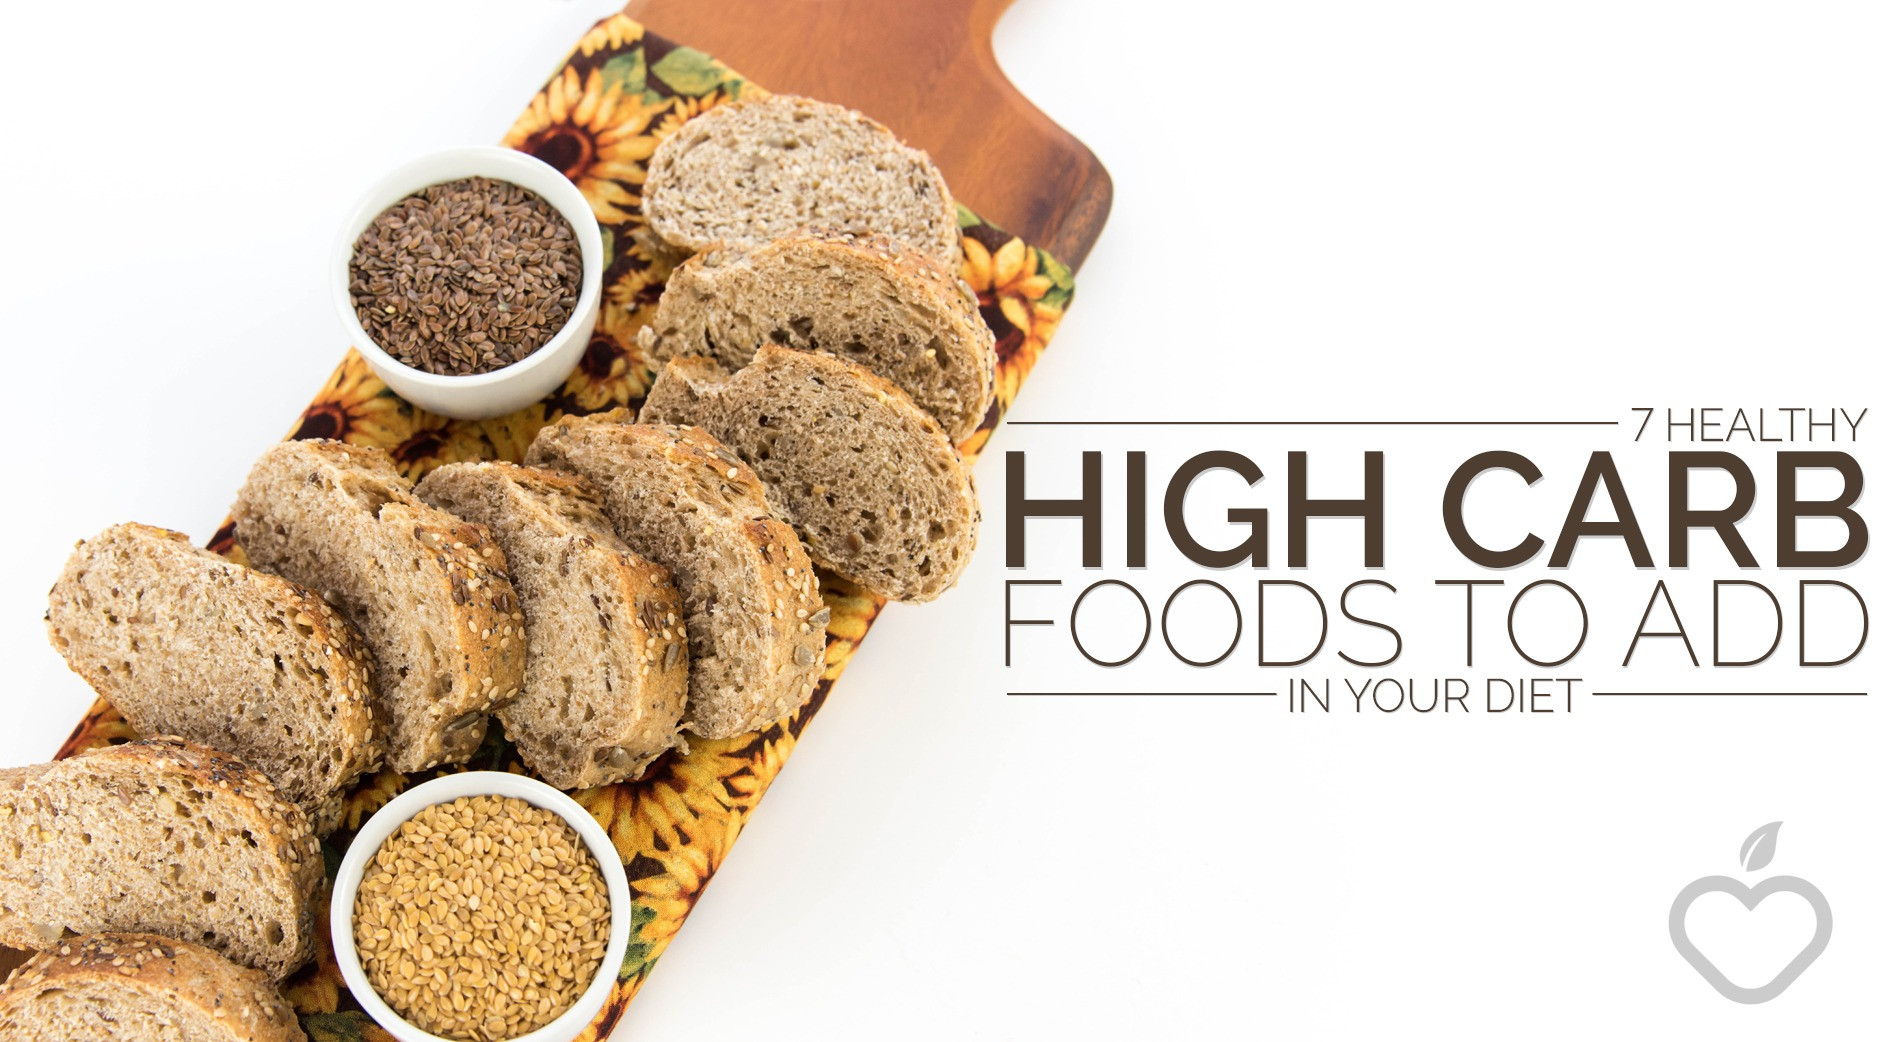 Healthy High Carb Snacks  7 Healthy High Carb Foods To Add In Your Diet